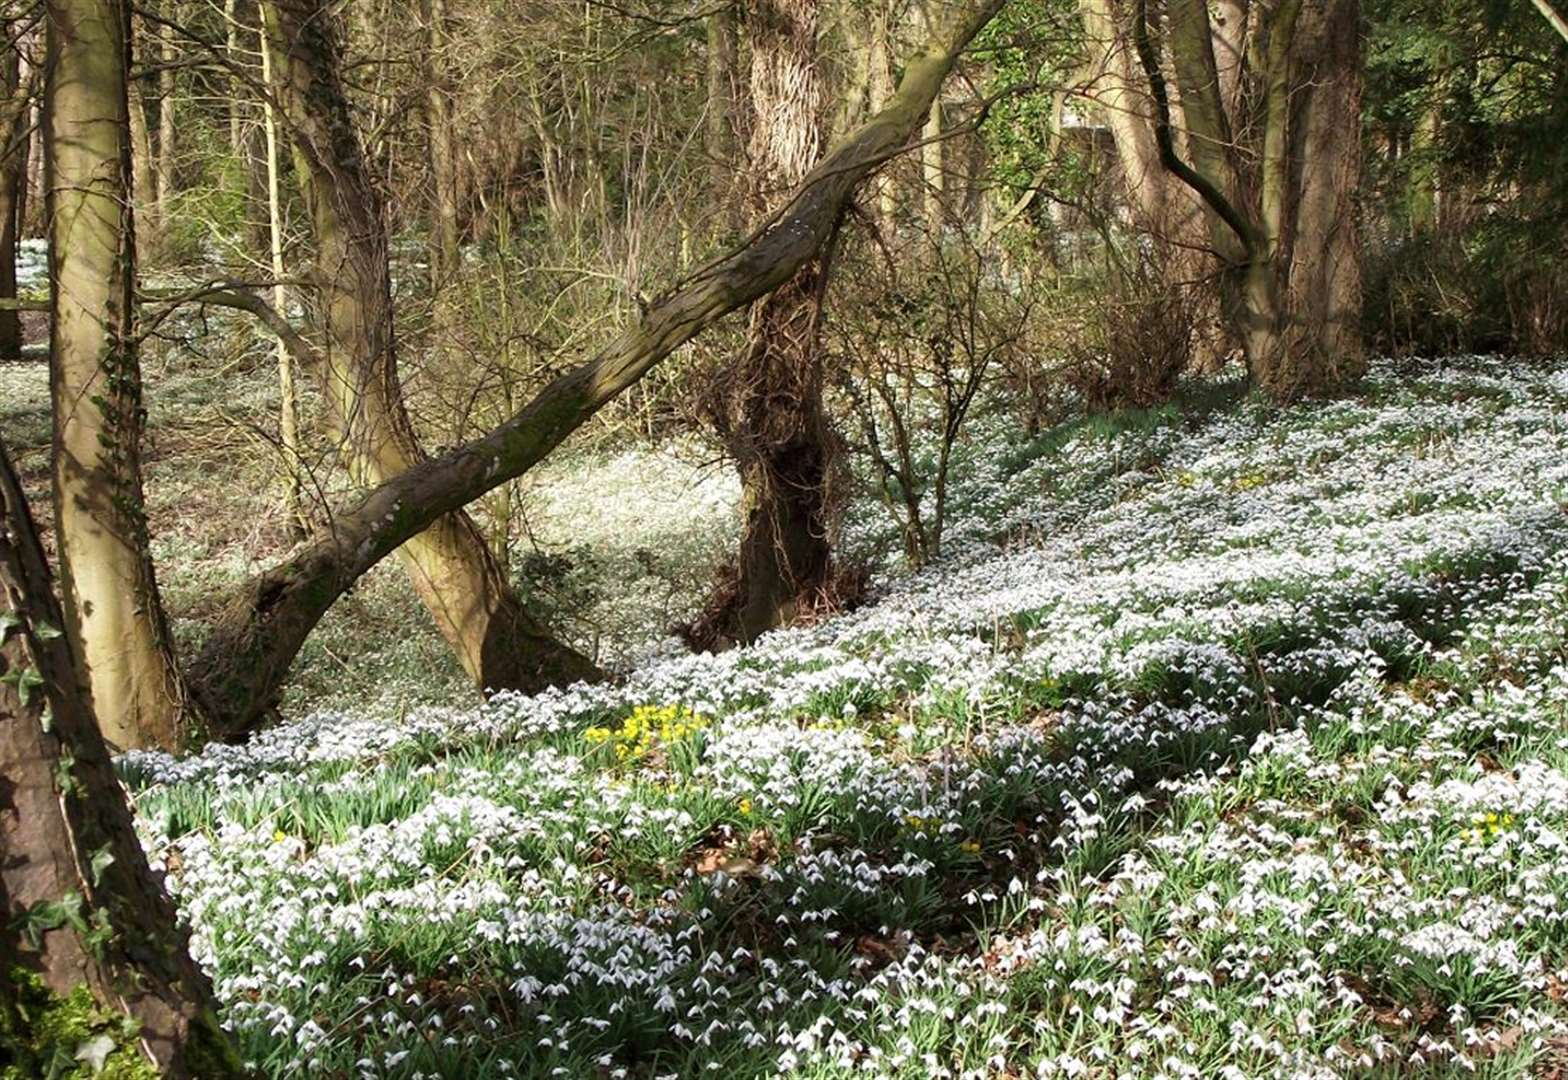 Man jailed for theft of snowdrops from Walsingham estate